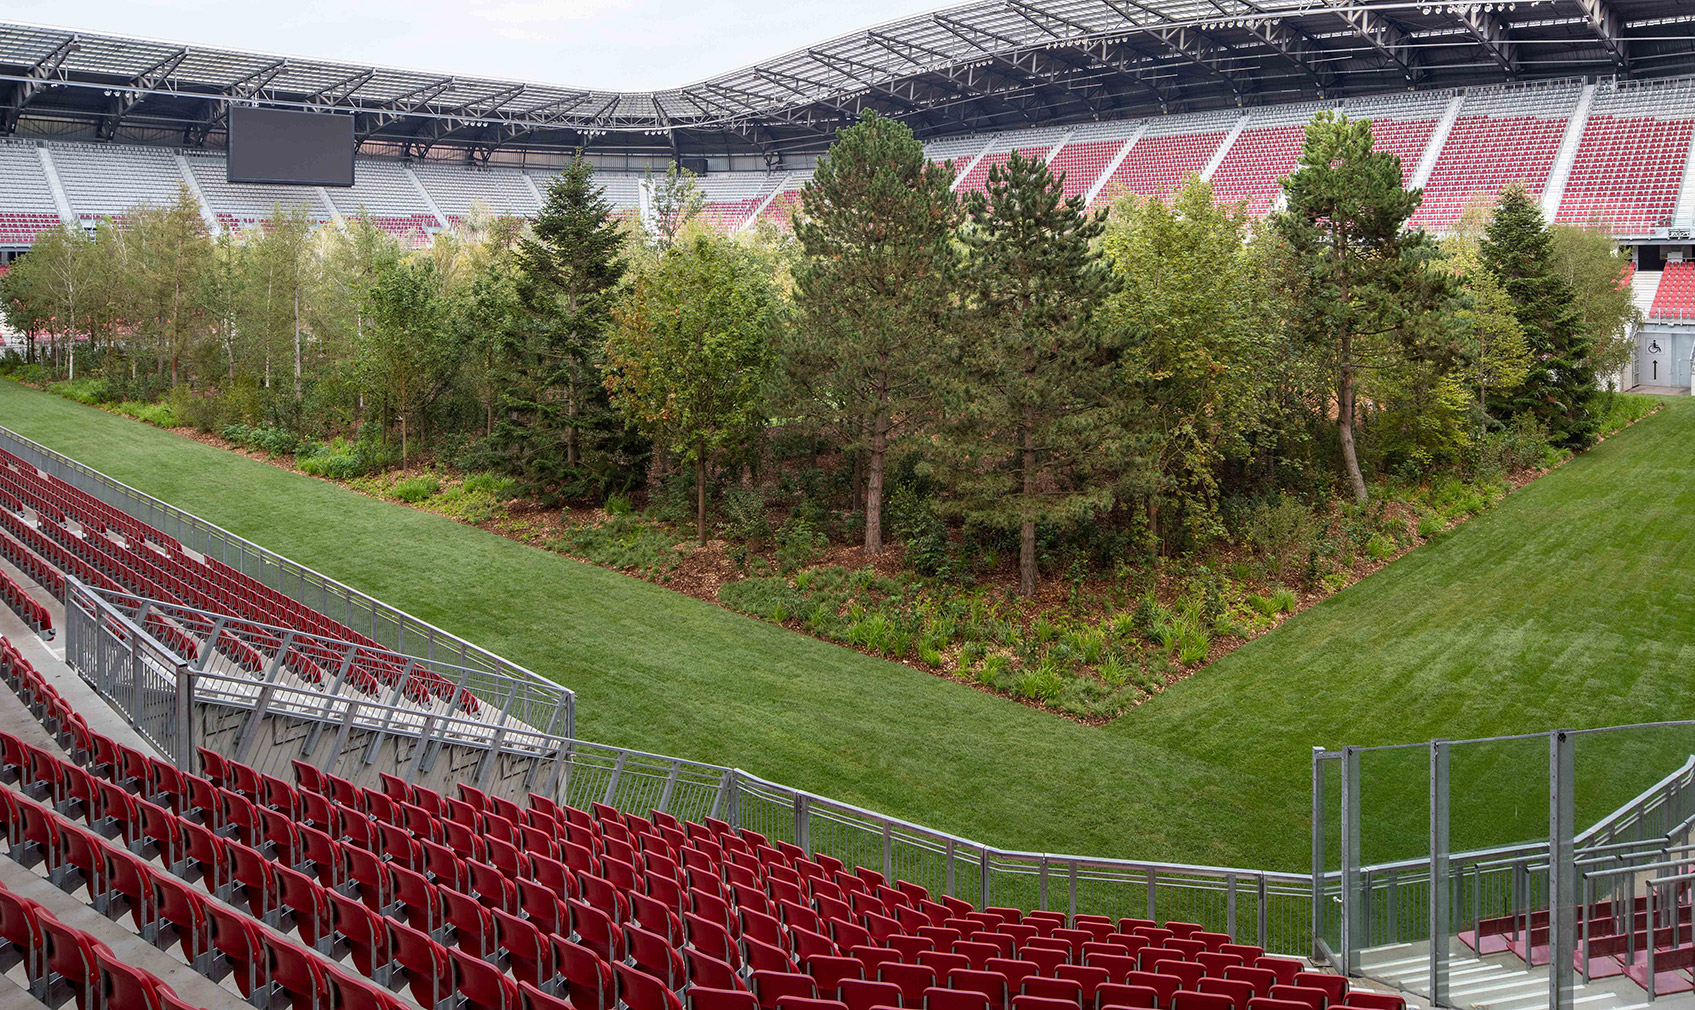 Artist Klaus Littmann fills an Austrian football stadium with 300 trees